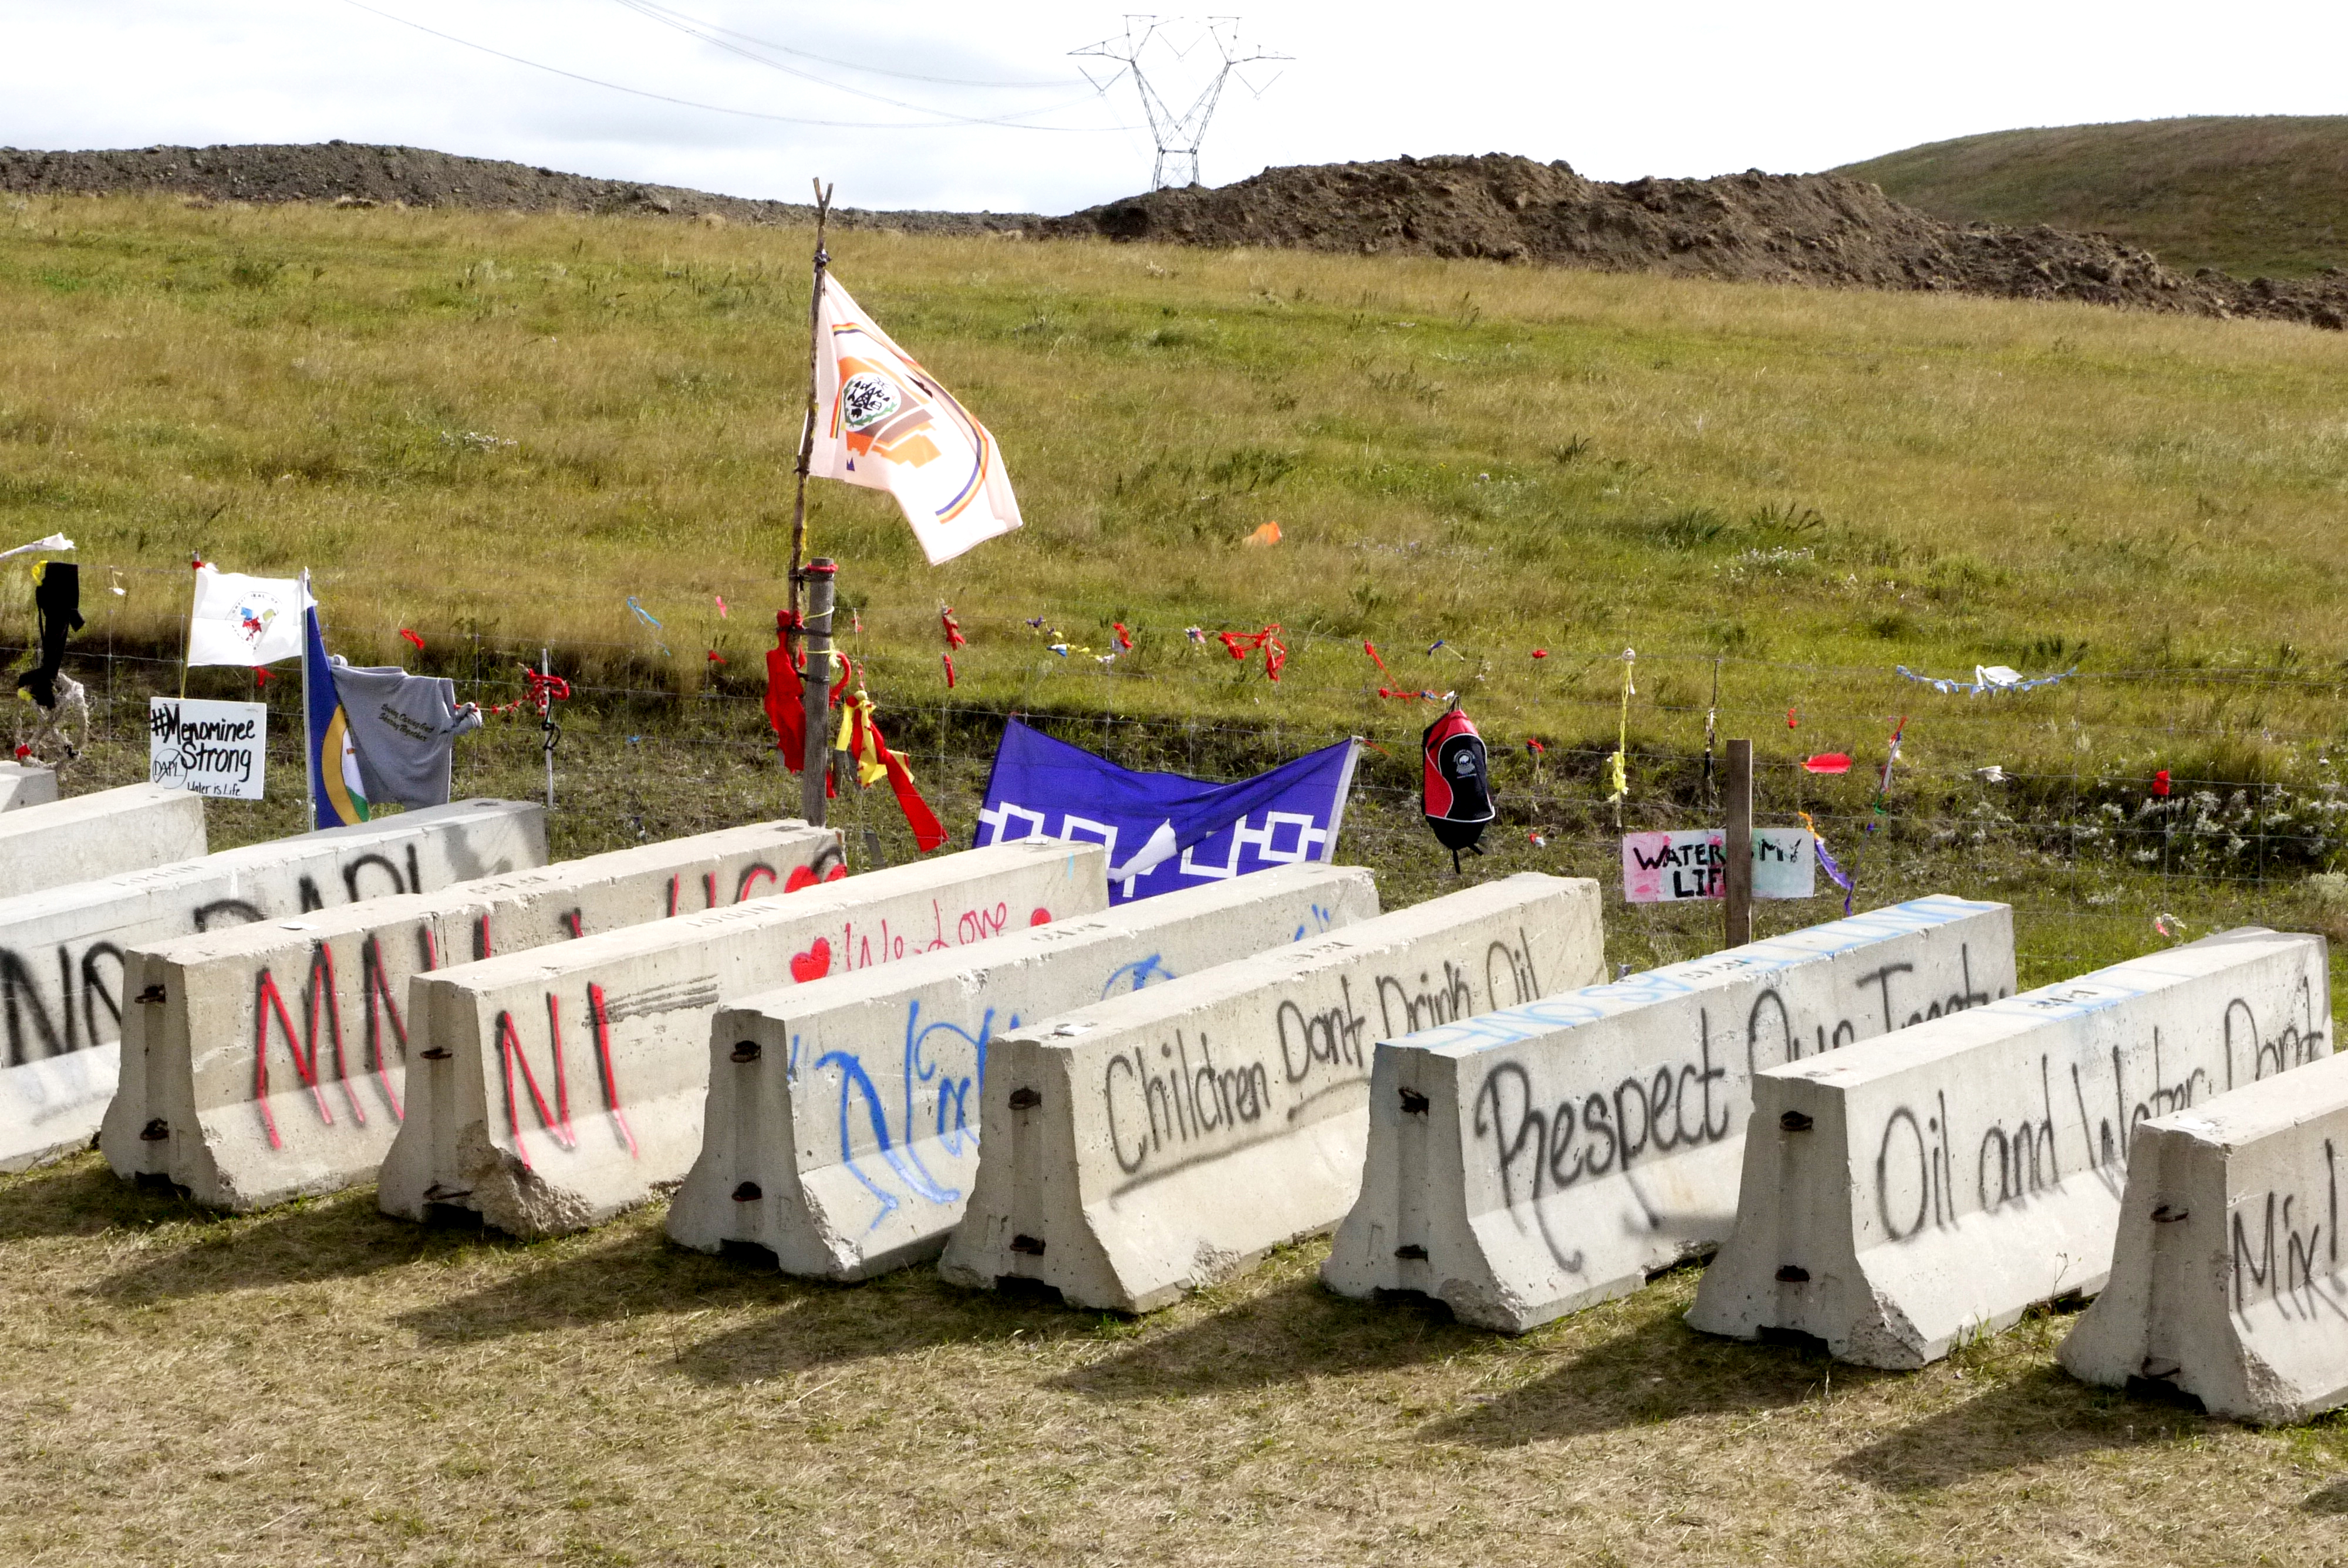 """Cement barriers painted with messages, such as """"Children Don't Drink Oil,"""" near the pipeline construction site, Sept. 13, 2016. (Sarah Jaffe for BillMoyers.com)"""